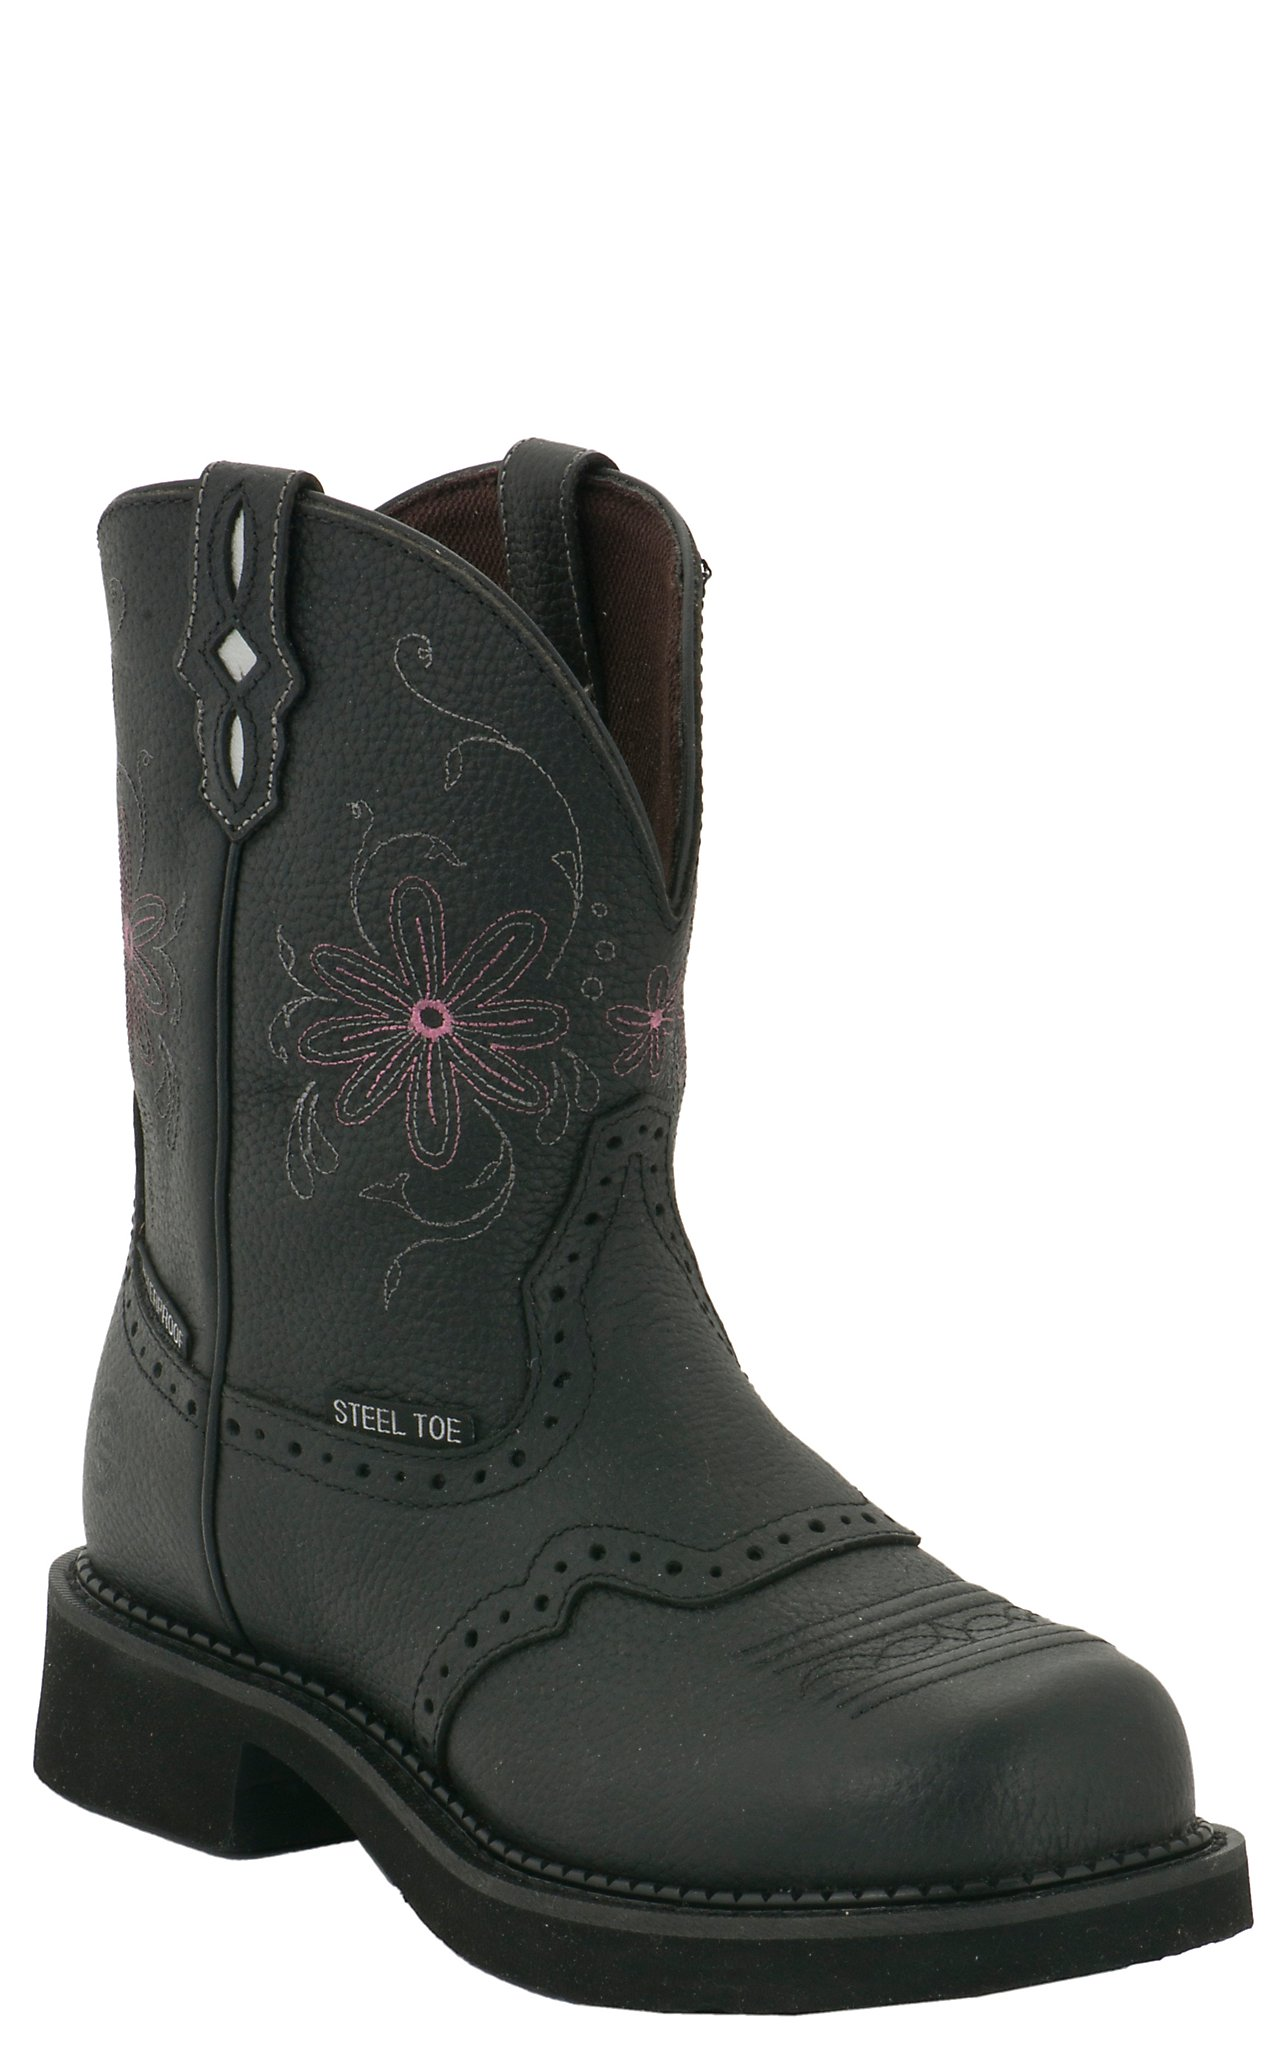 Justin Original Work Boots Gypsy Ladies Black Saddle Vamp WP Steel ...